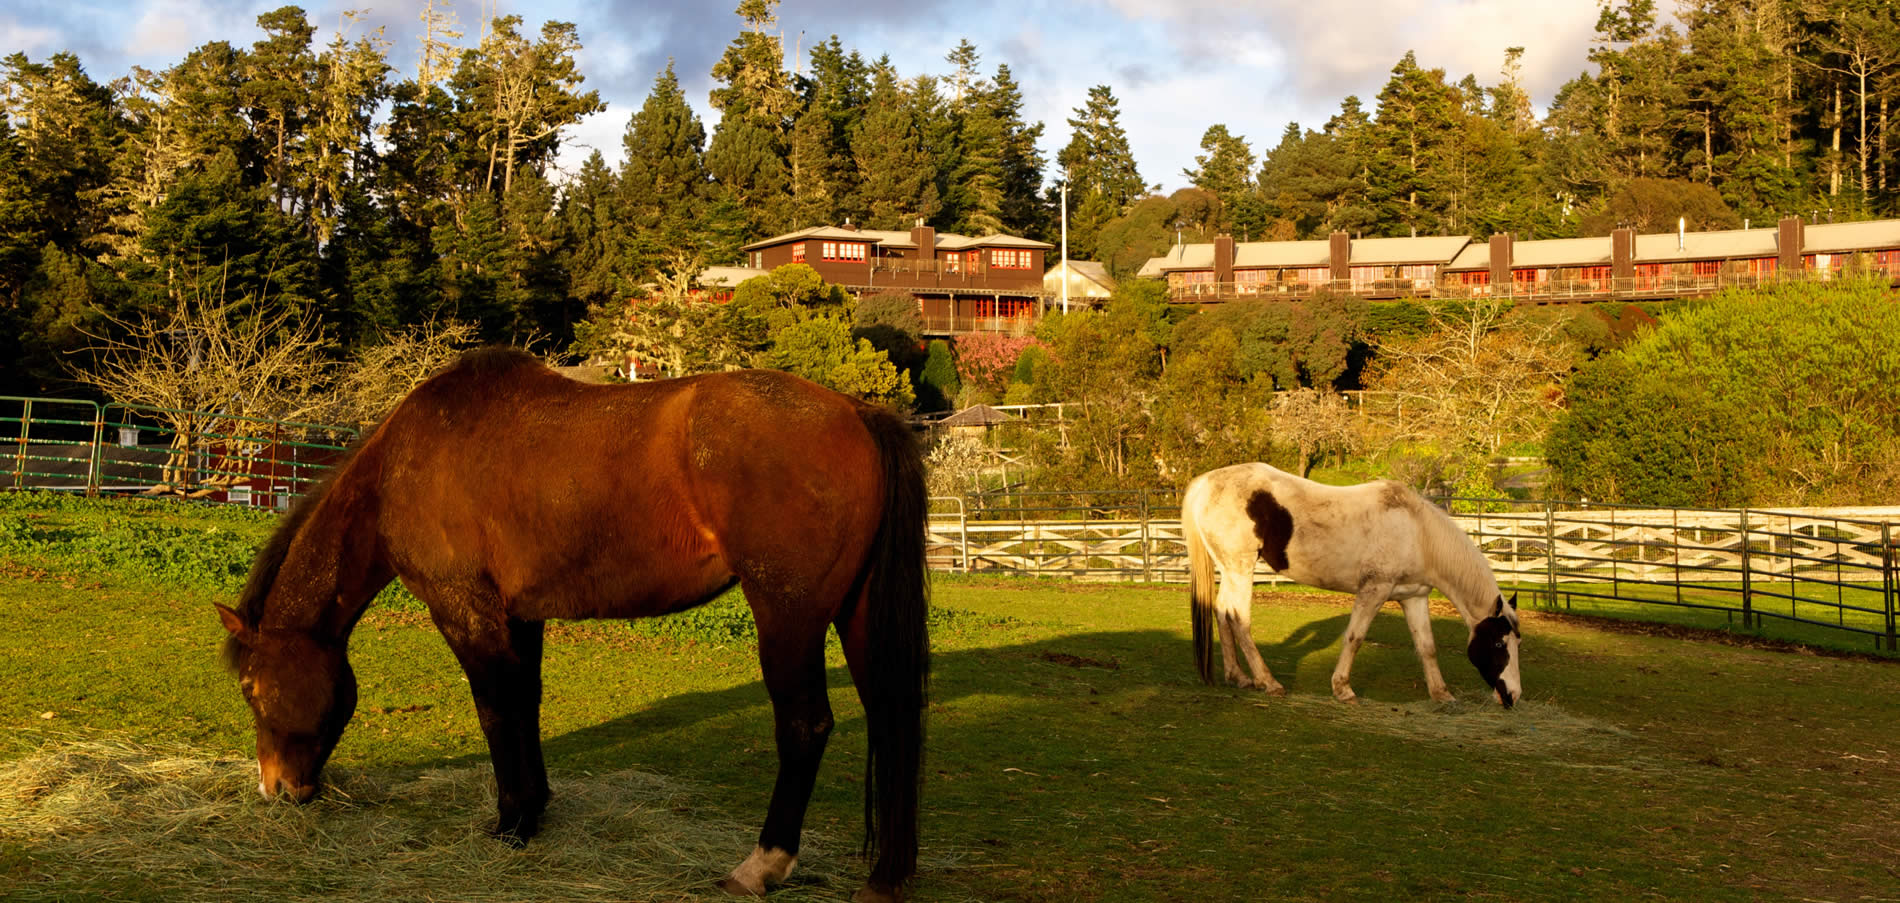 horses in foreground of the stanford inn mendocino hotel & resort